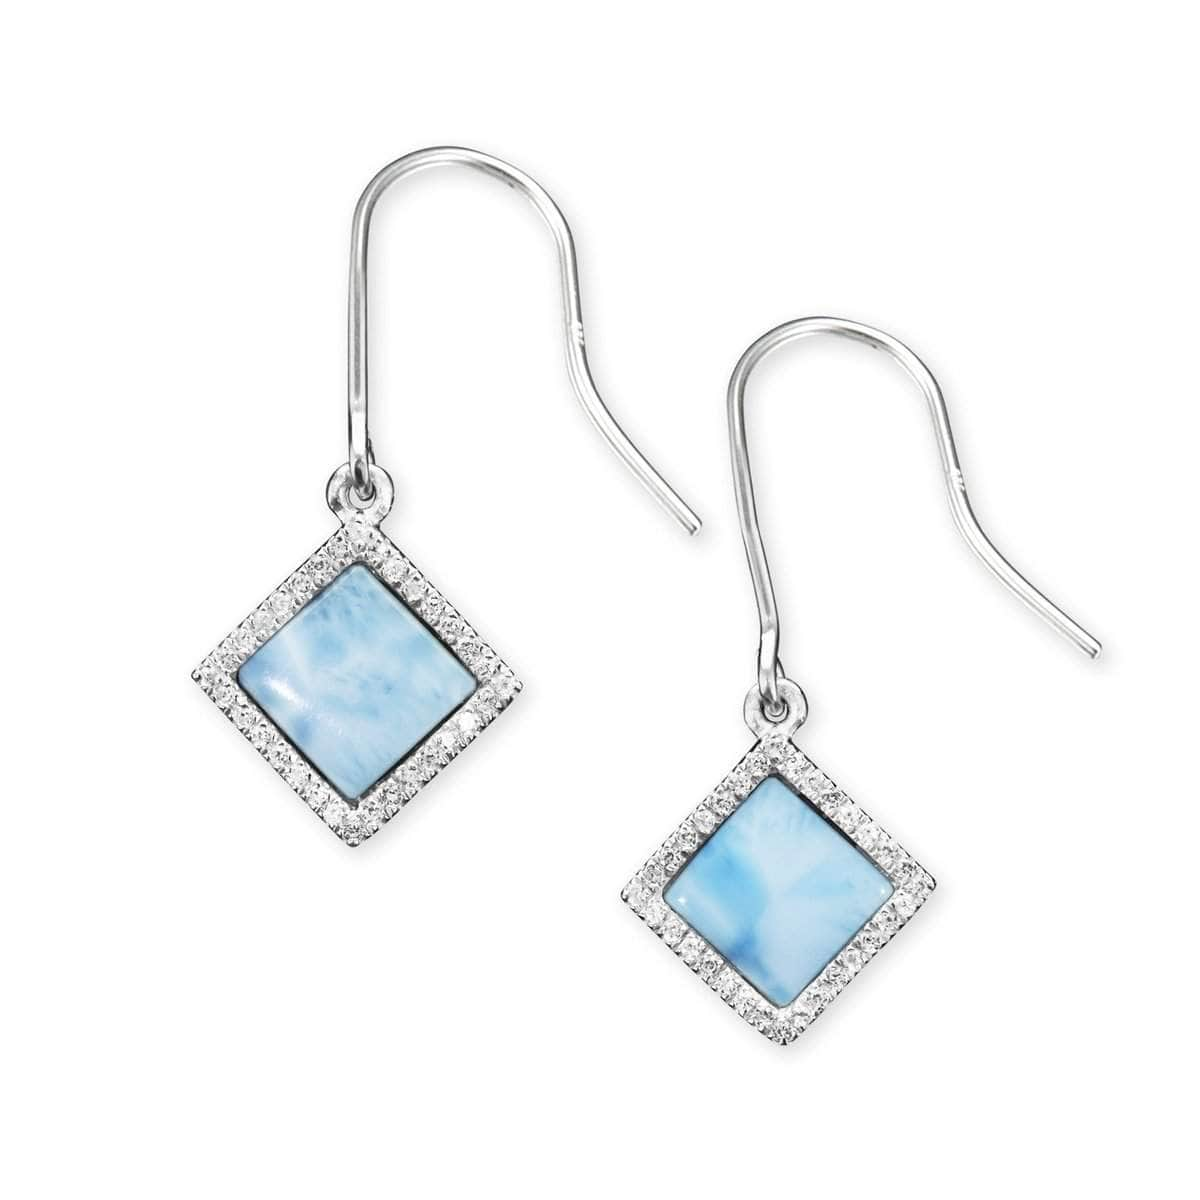 Echo White Sapphire Earrings - Eecho00-00-Marahlago Larimar-Renee Taylor Gallery